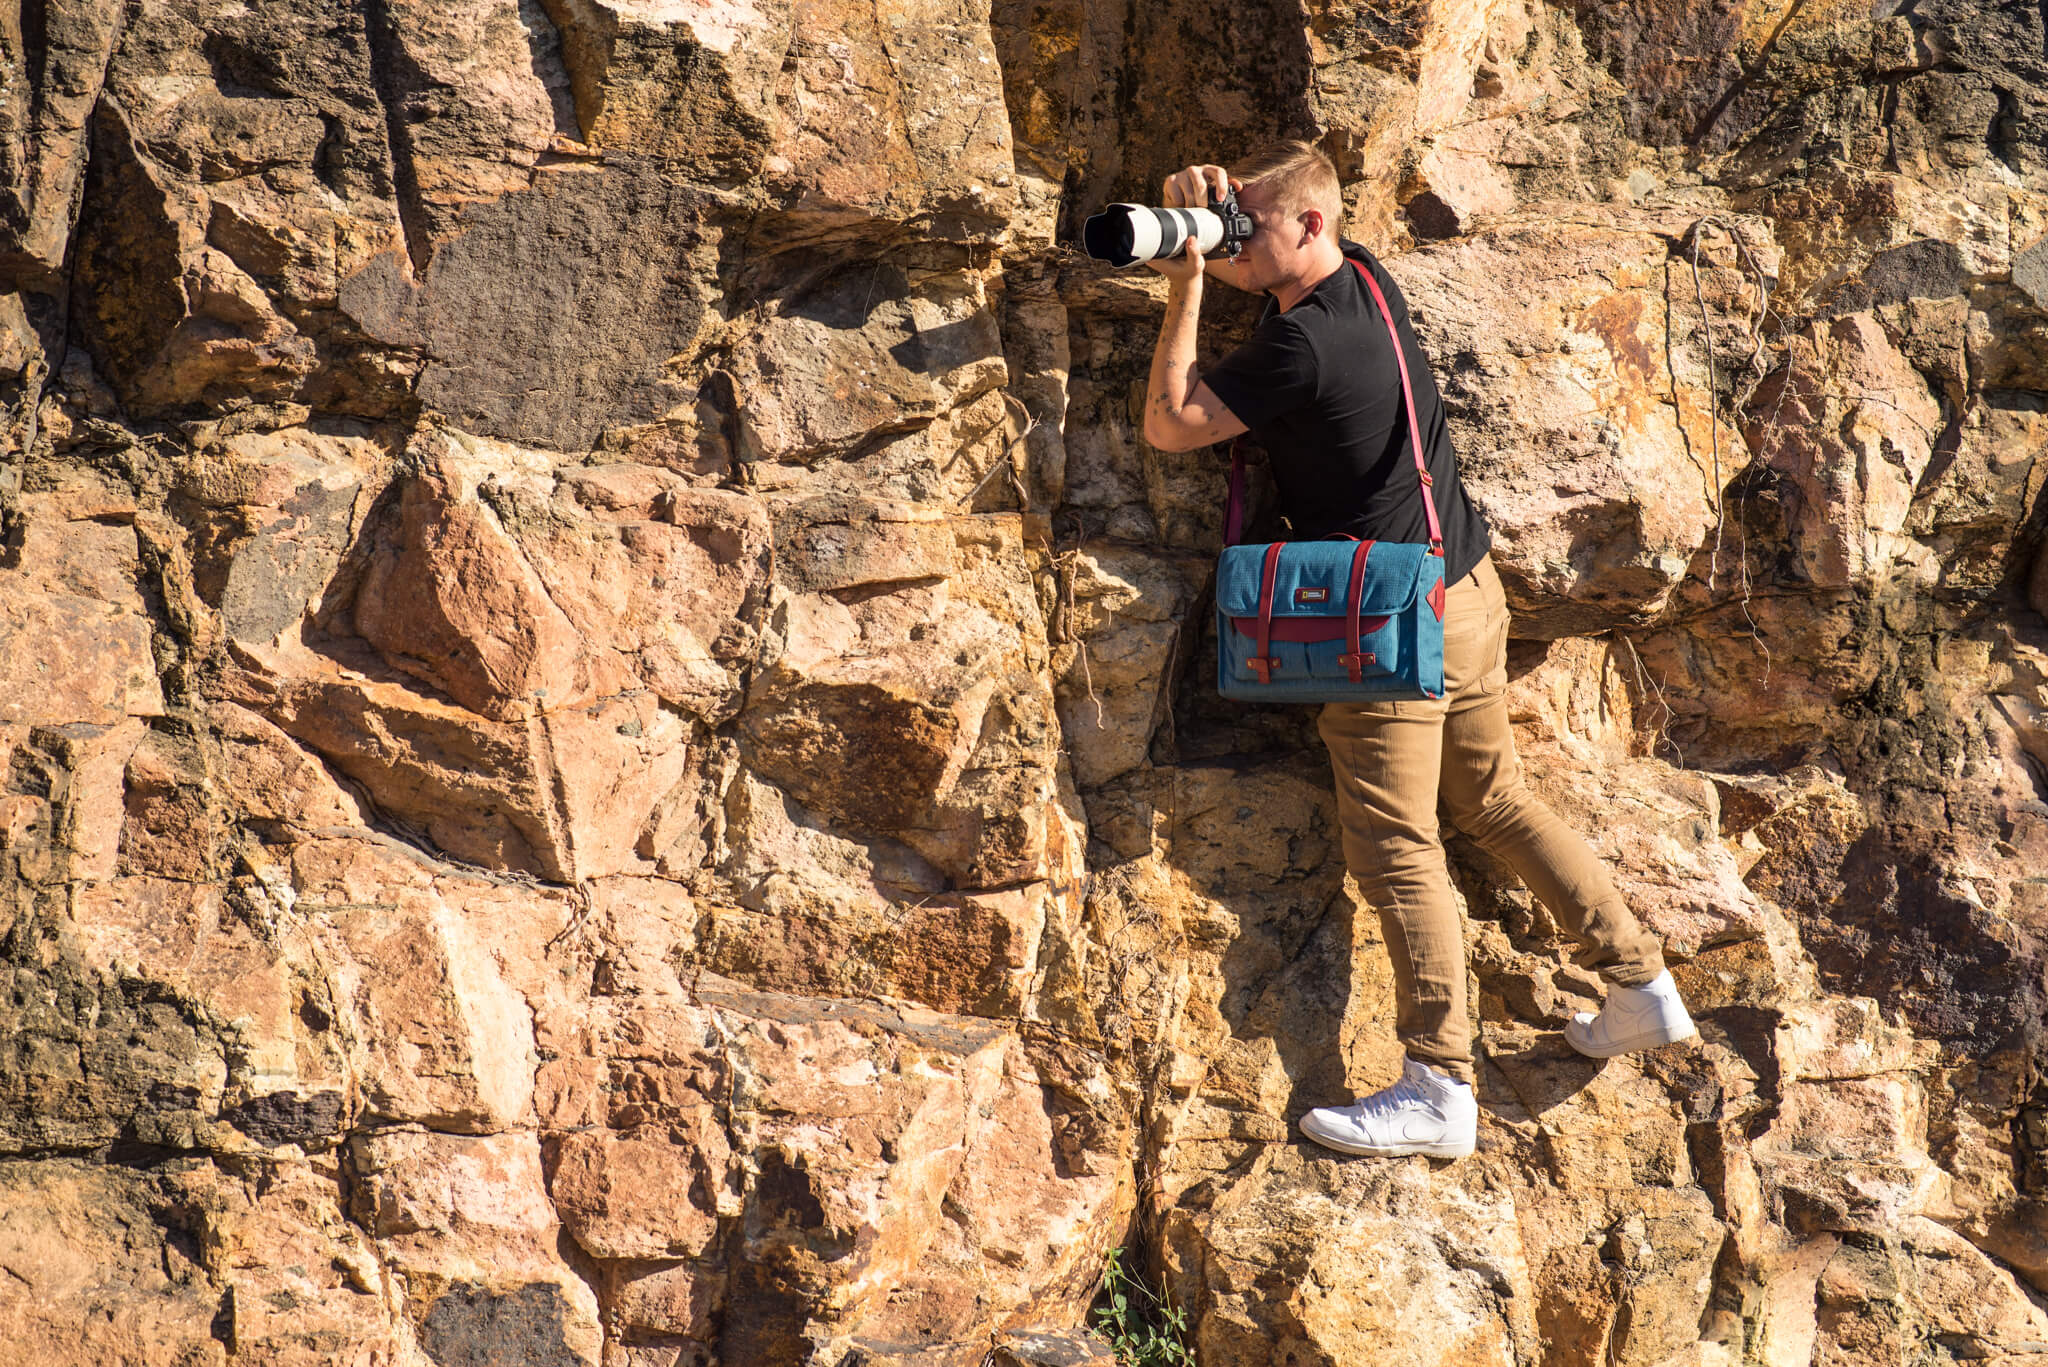 Photographer with messenger bag